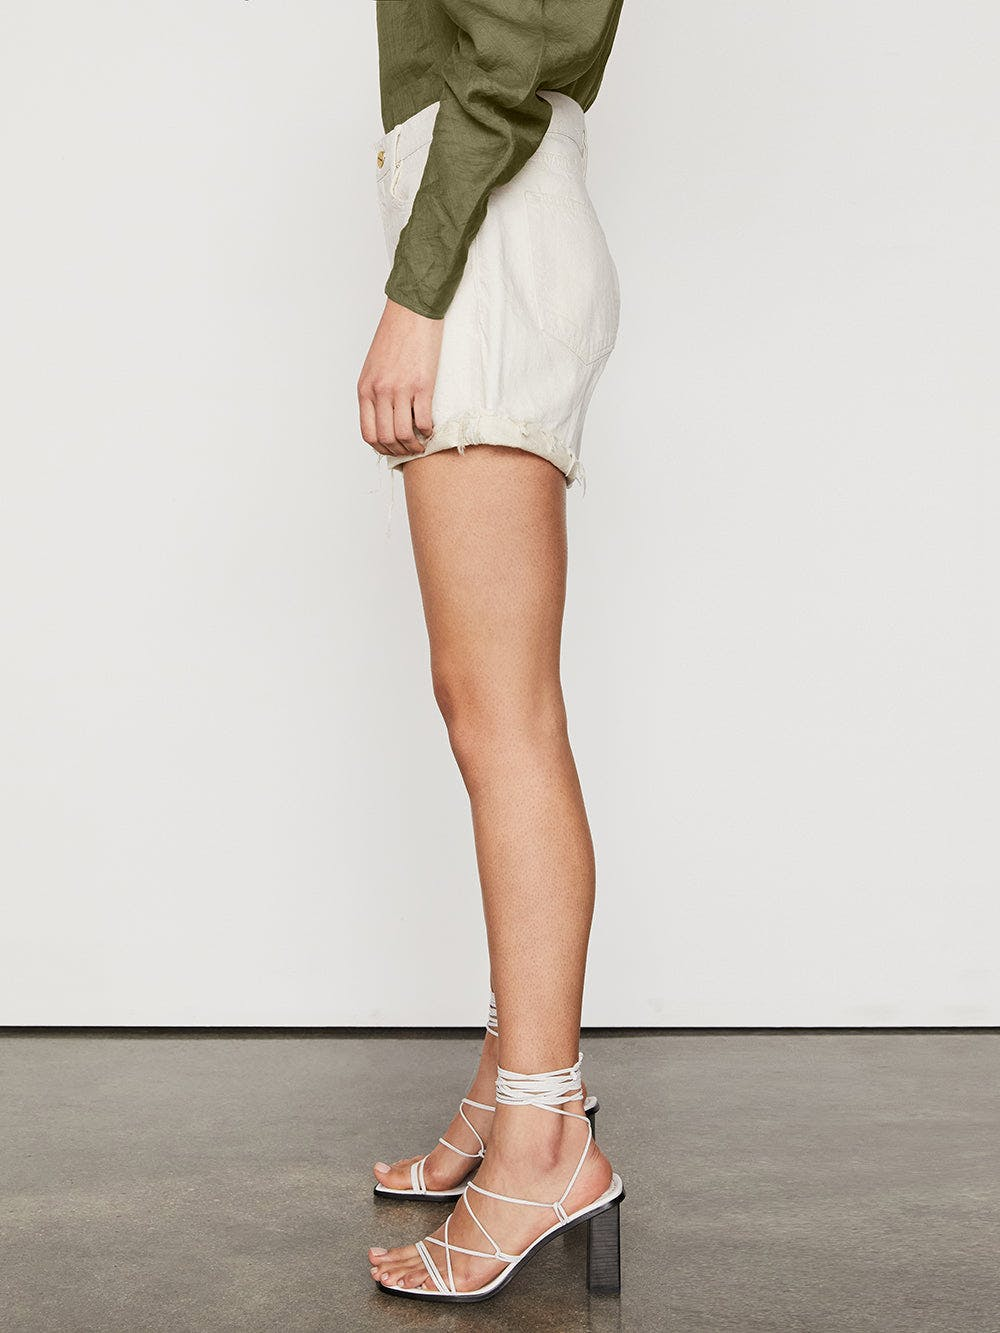 shorts side view